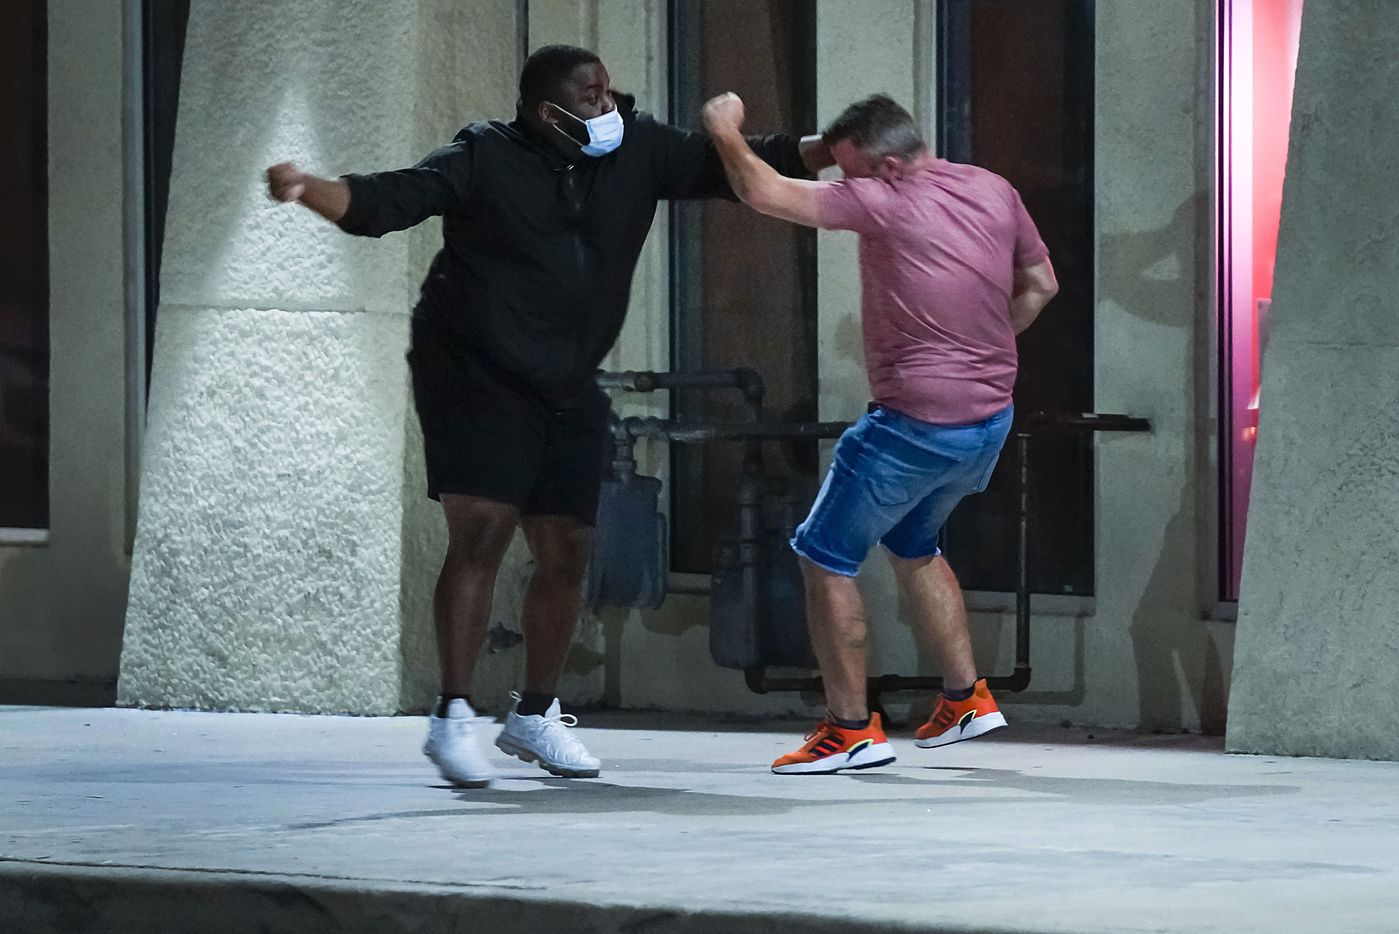 A protester (left) fights with a man who yelled from the sidewalk at marchers near Dallas City Hall on Wednesday, Sept. 23, 2020. After the two argued they briefly scuffled before being separated by other protesters.